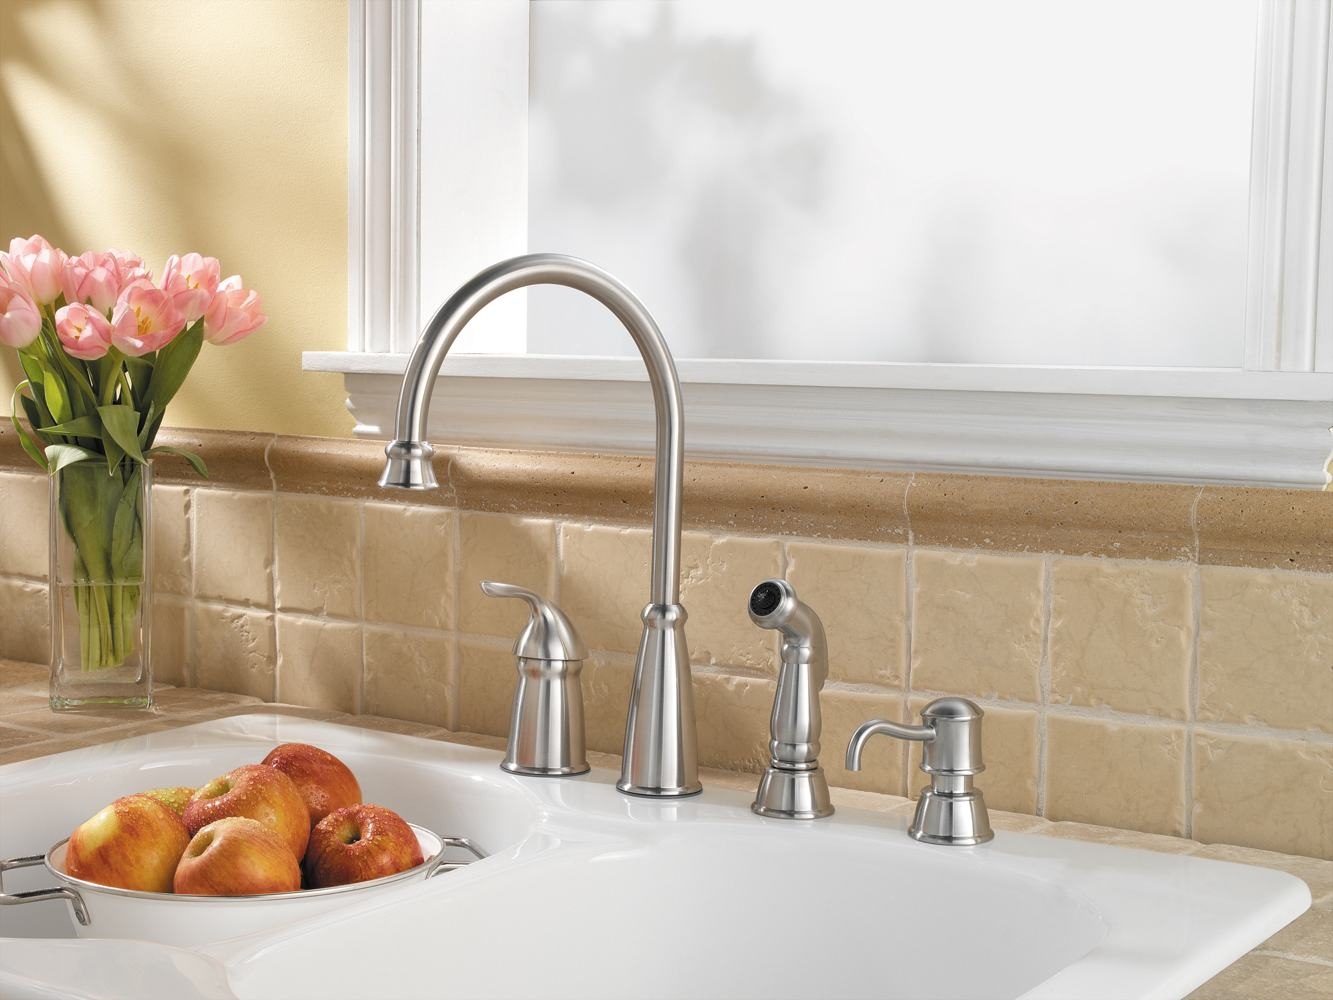 Ordinary Kitchen Faucet Soap Dispenser #3: Avalon Stainless Kitchen. Includes Matching Soap Dispenser ...